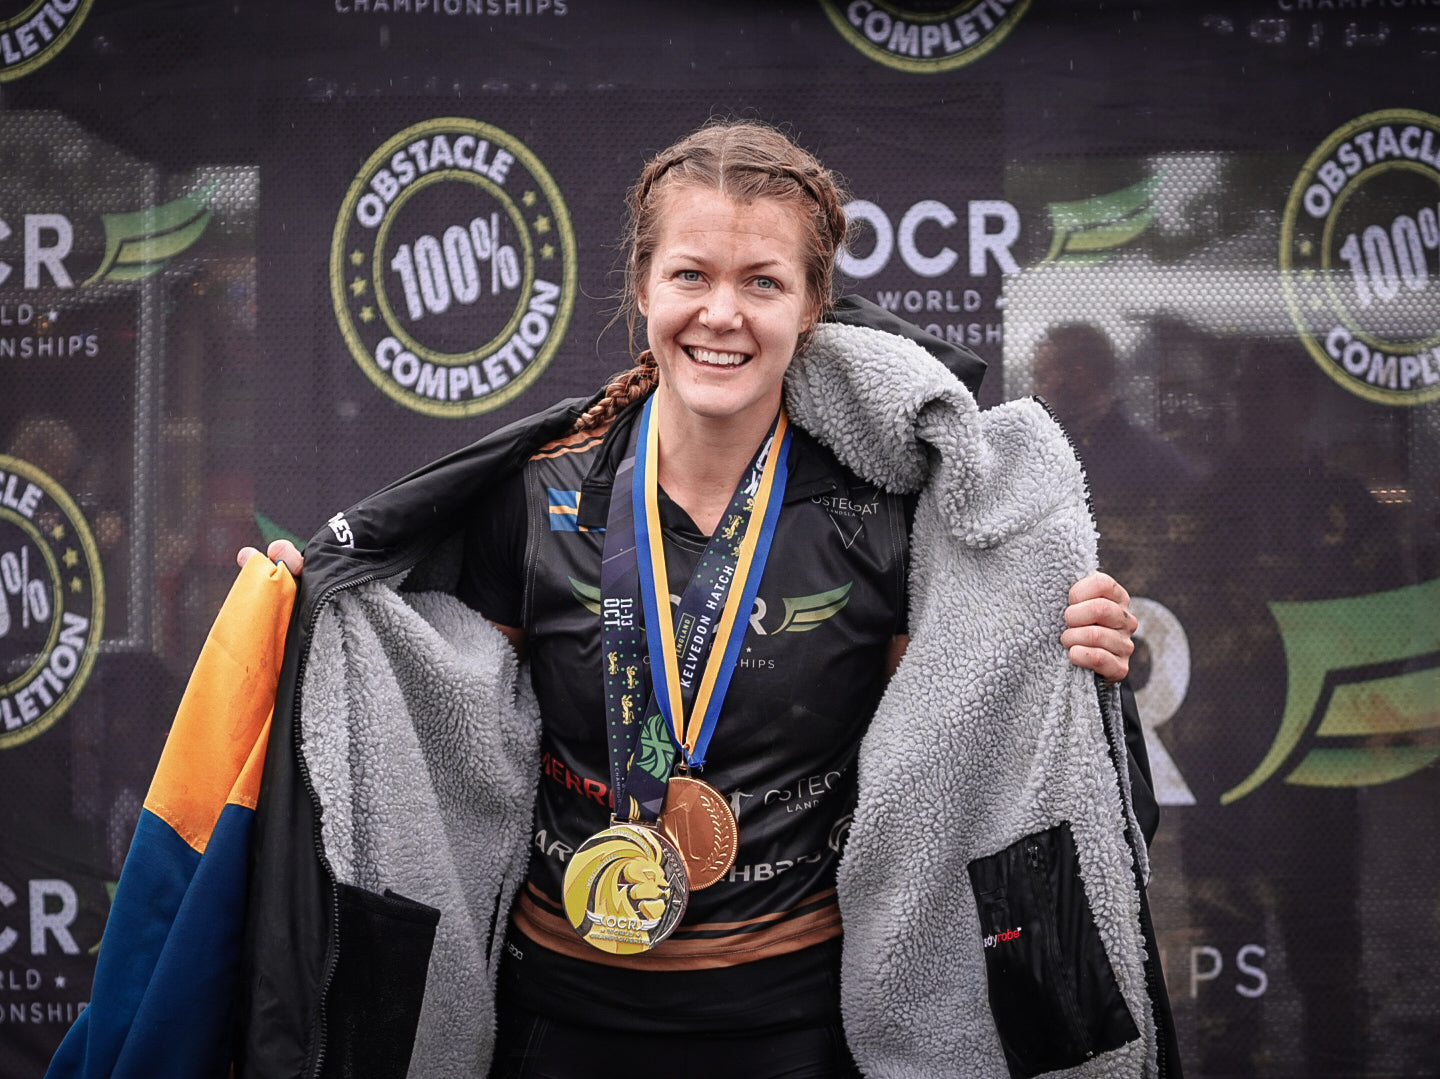 Karin Karlsson Women's 15k world Champion - OCRWC 2019